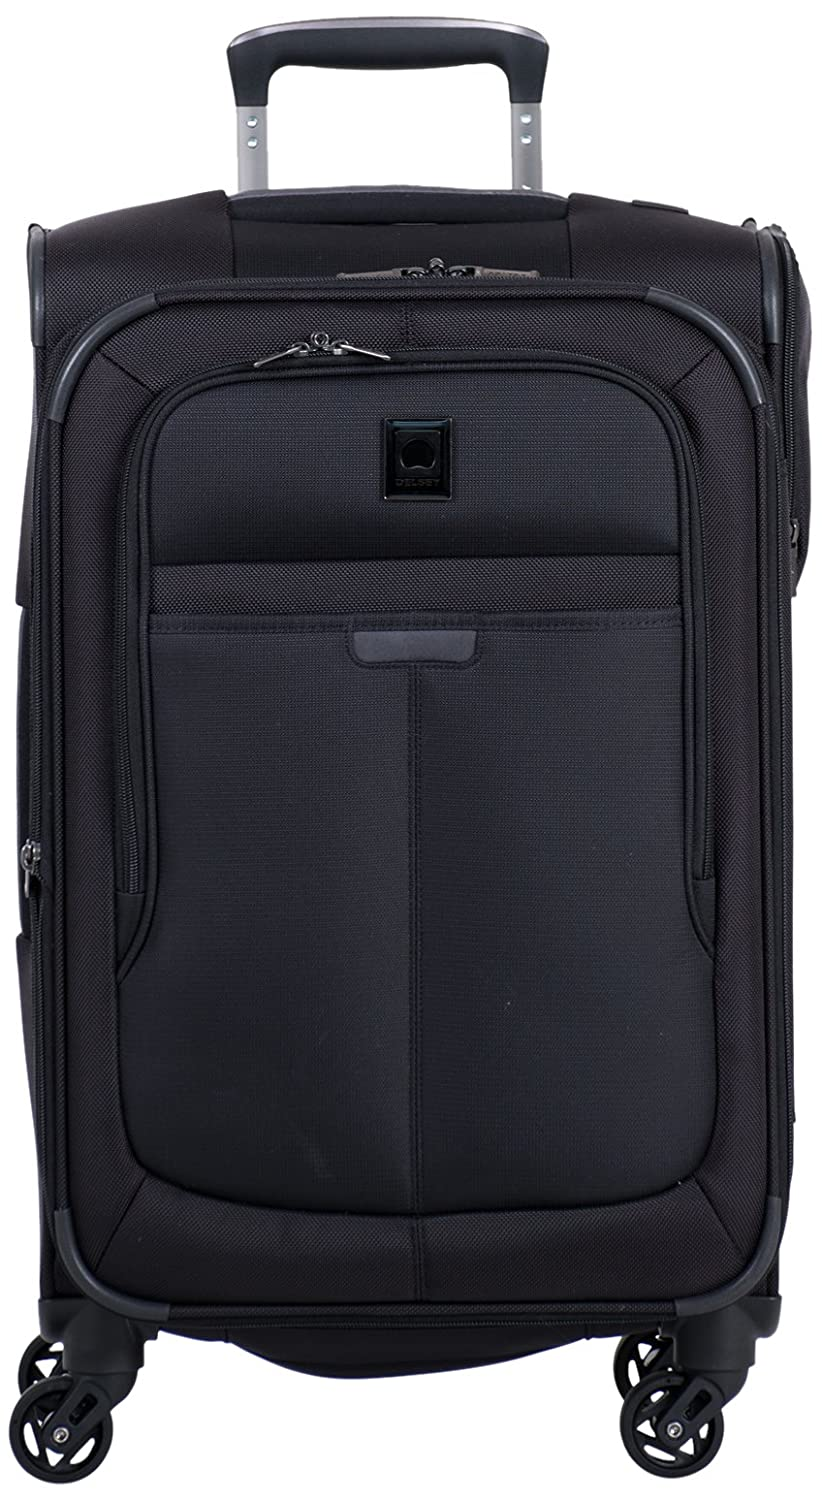 35e925297 outlet Delsey Luggage Helium Pilot 3.0 Carry-On Expandable Spinner Trolley,  Black, One